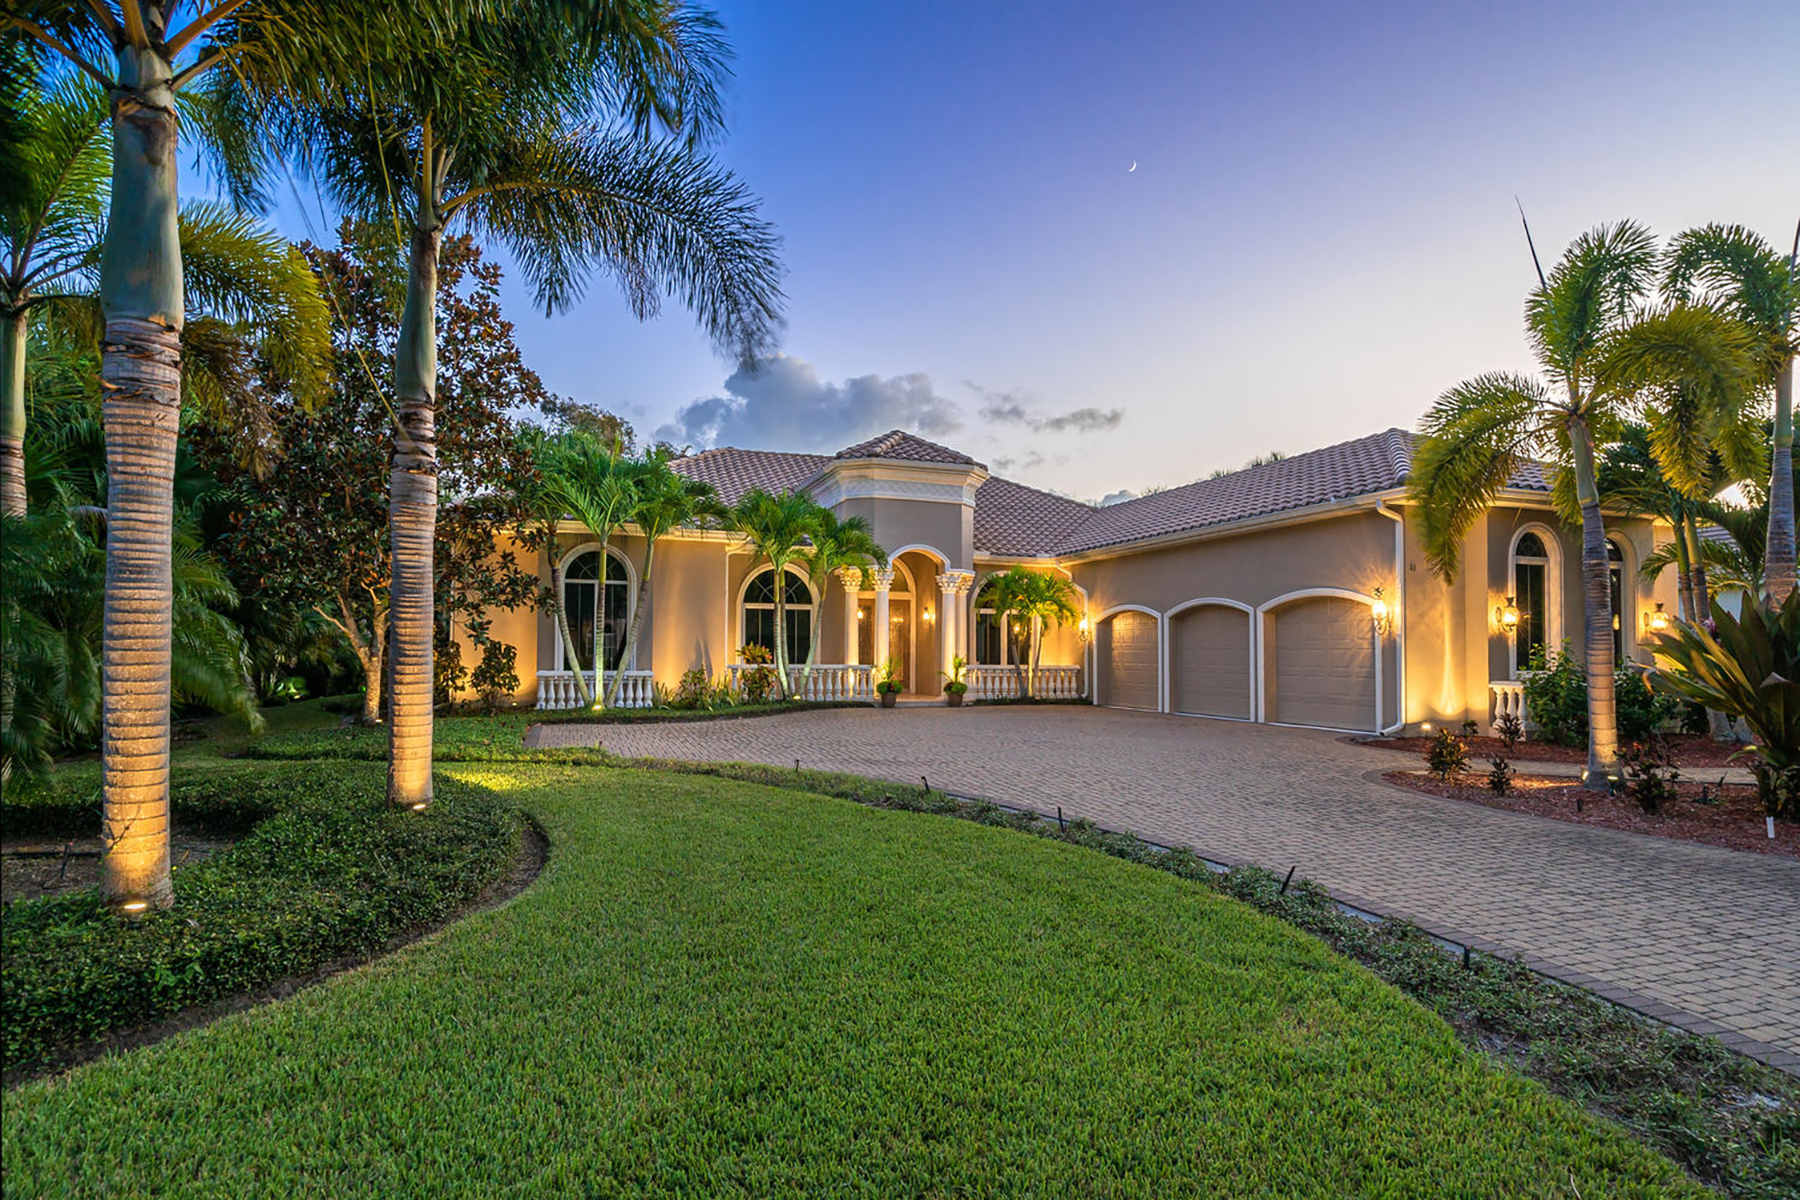 Single Family Homes for Sale at 31 Boca Royale Blvd Englewood, Florida 34223 United States